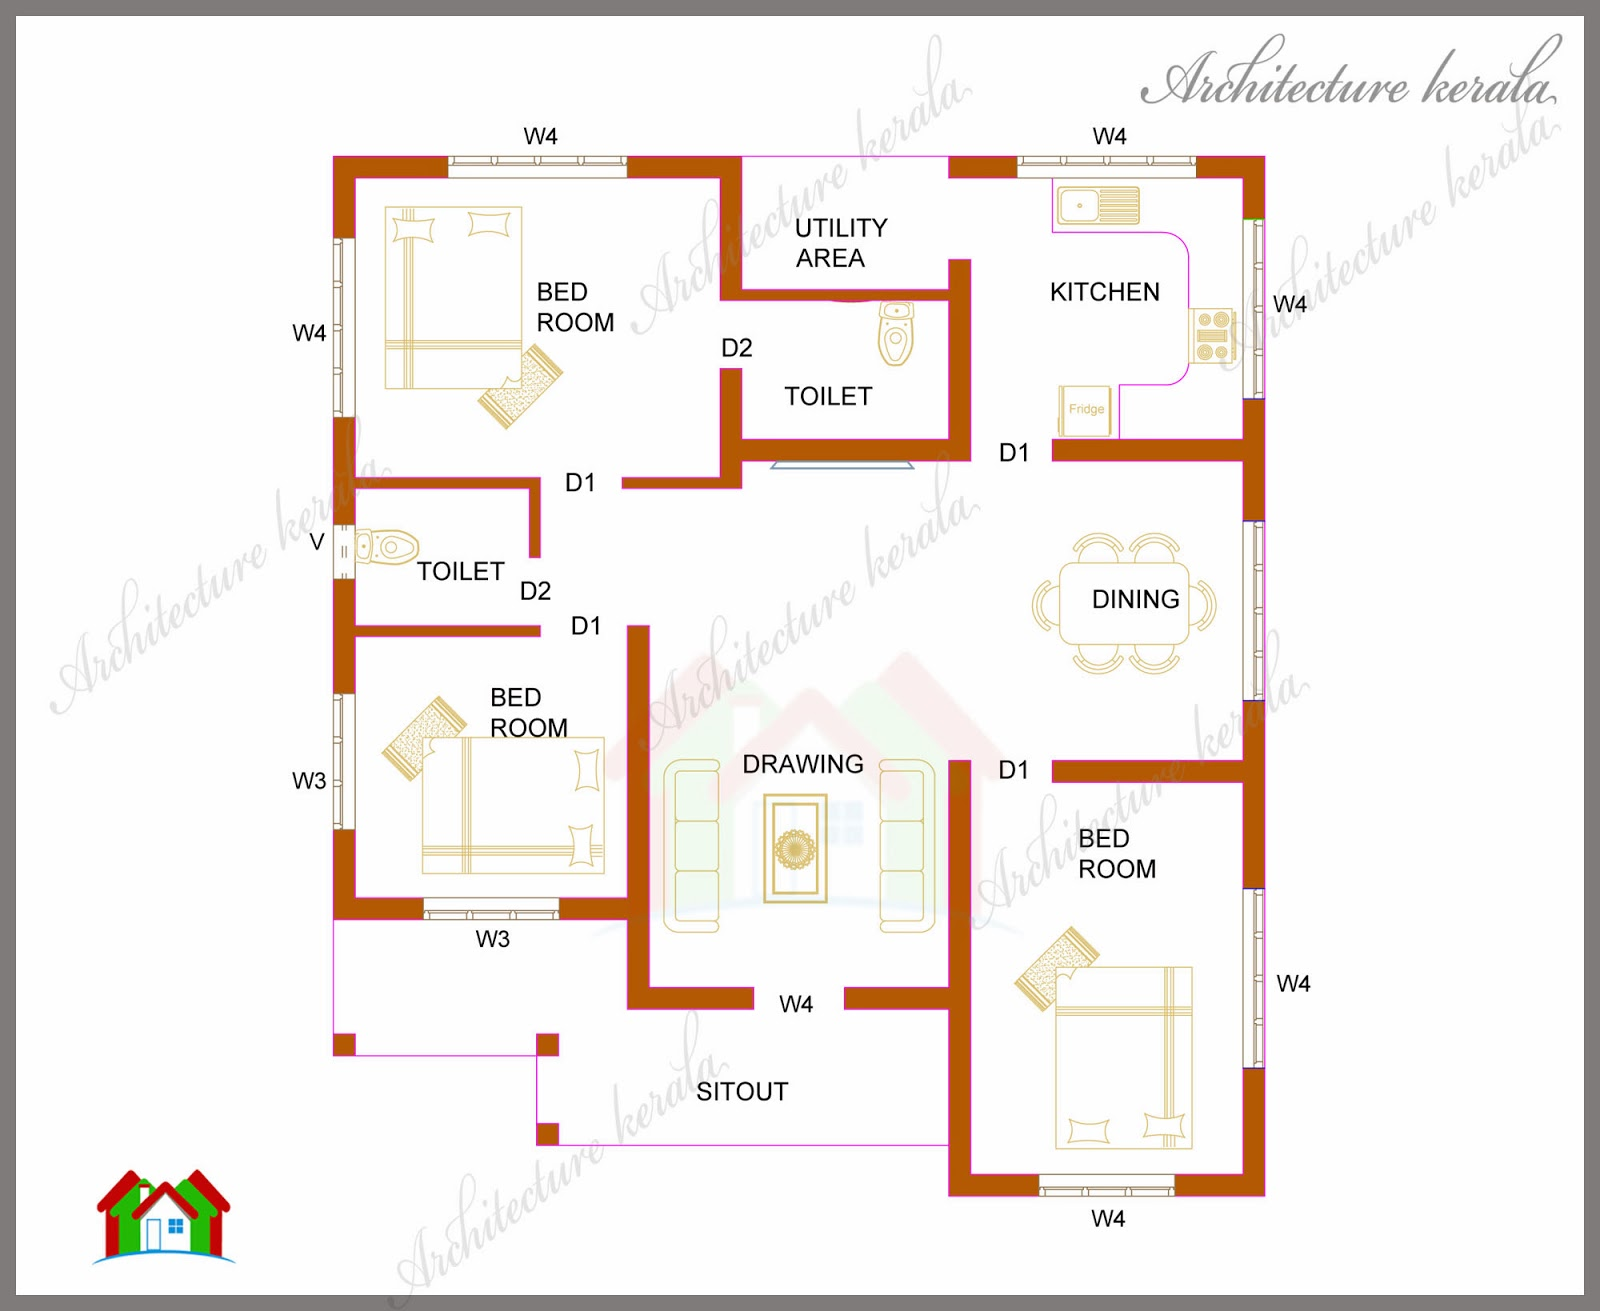 Three bedrooms in 1200 square feet kerala house plan for 3 bedroom house plans